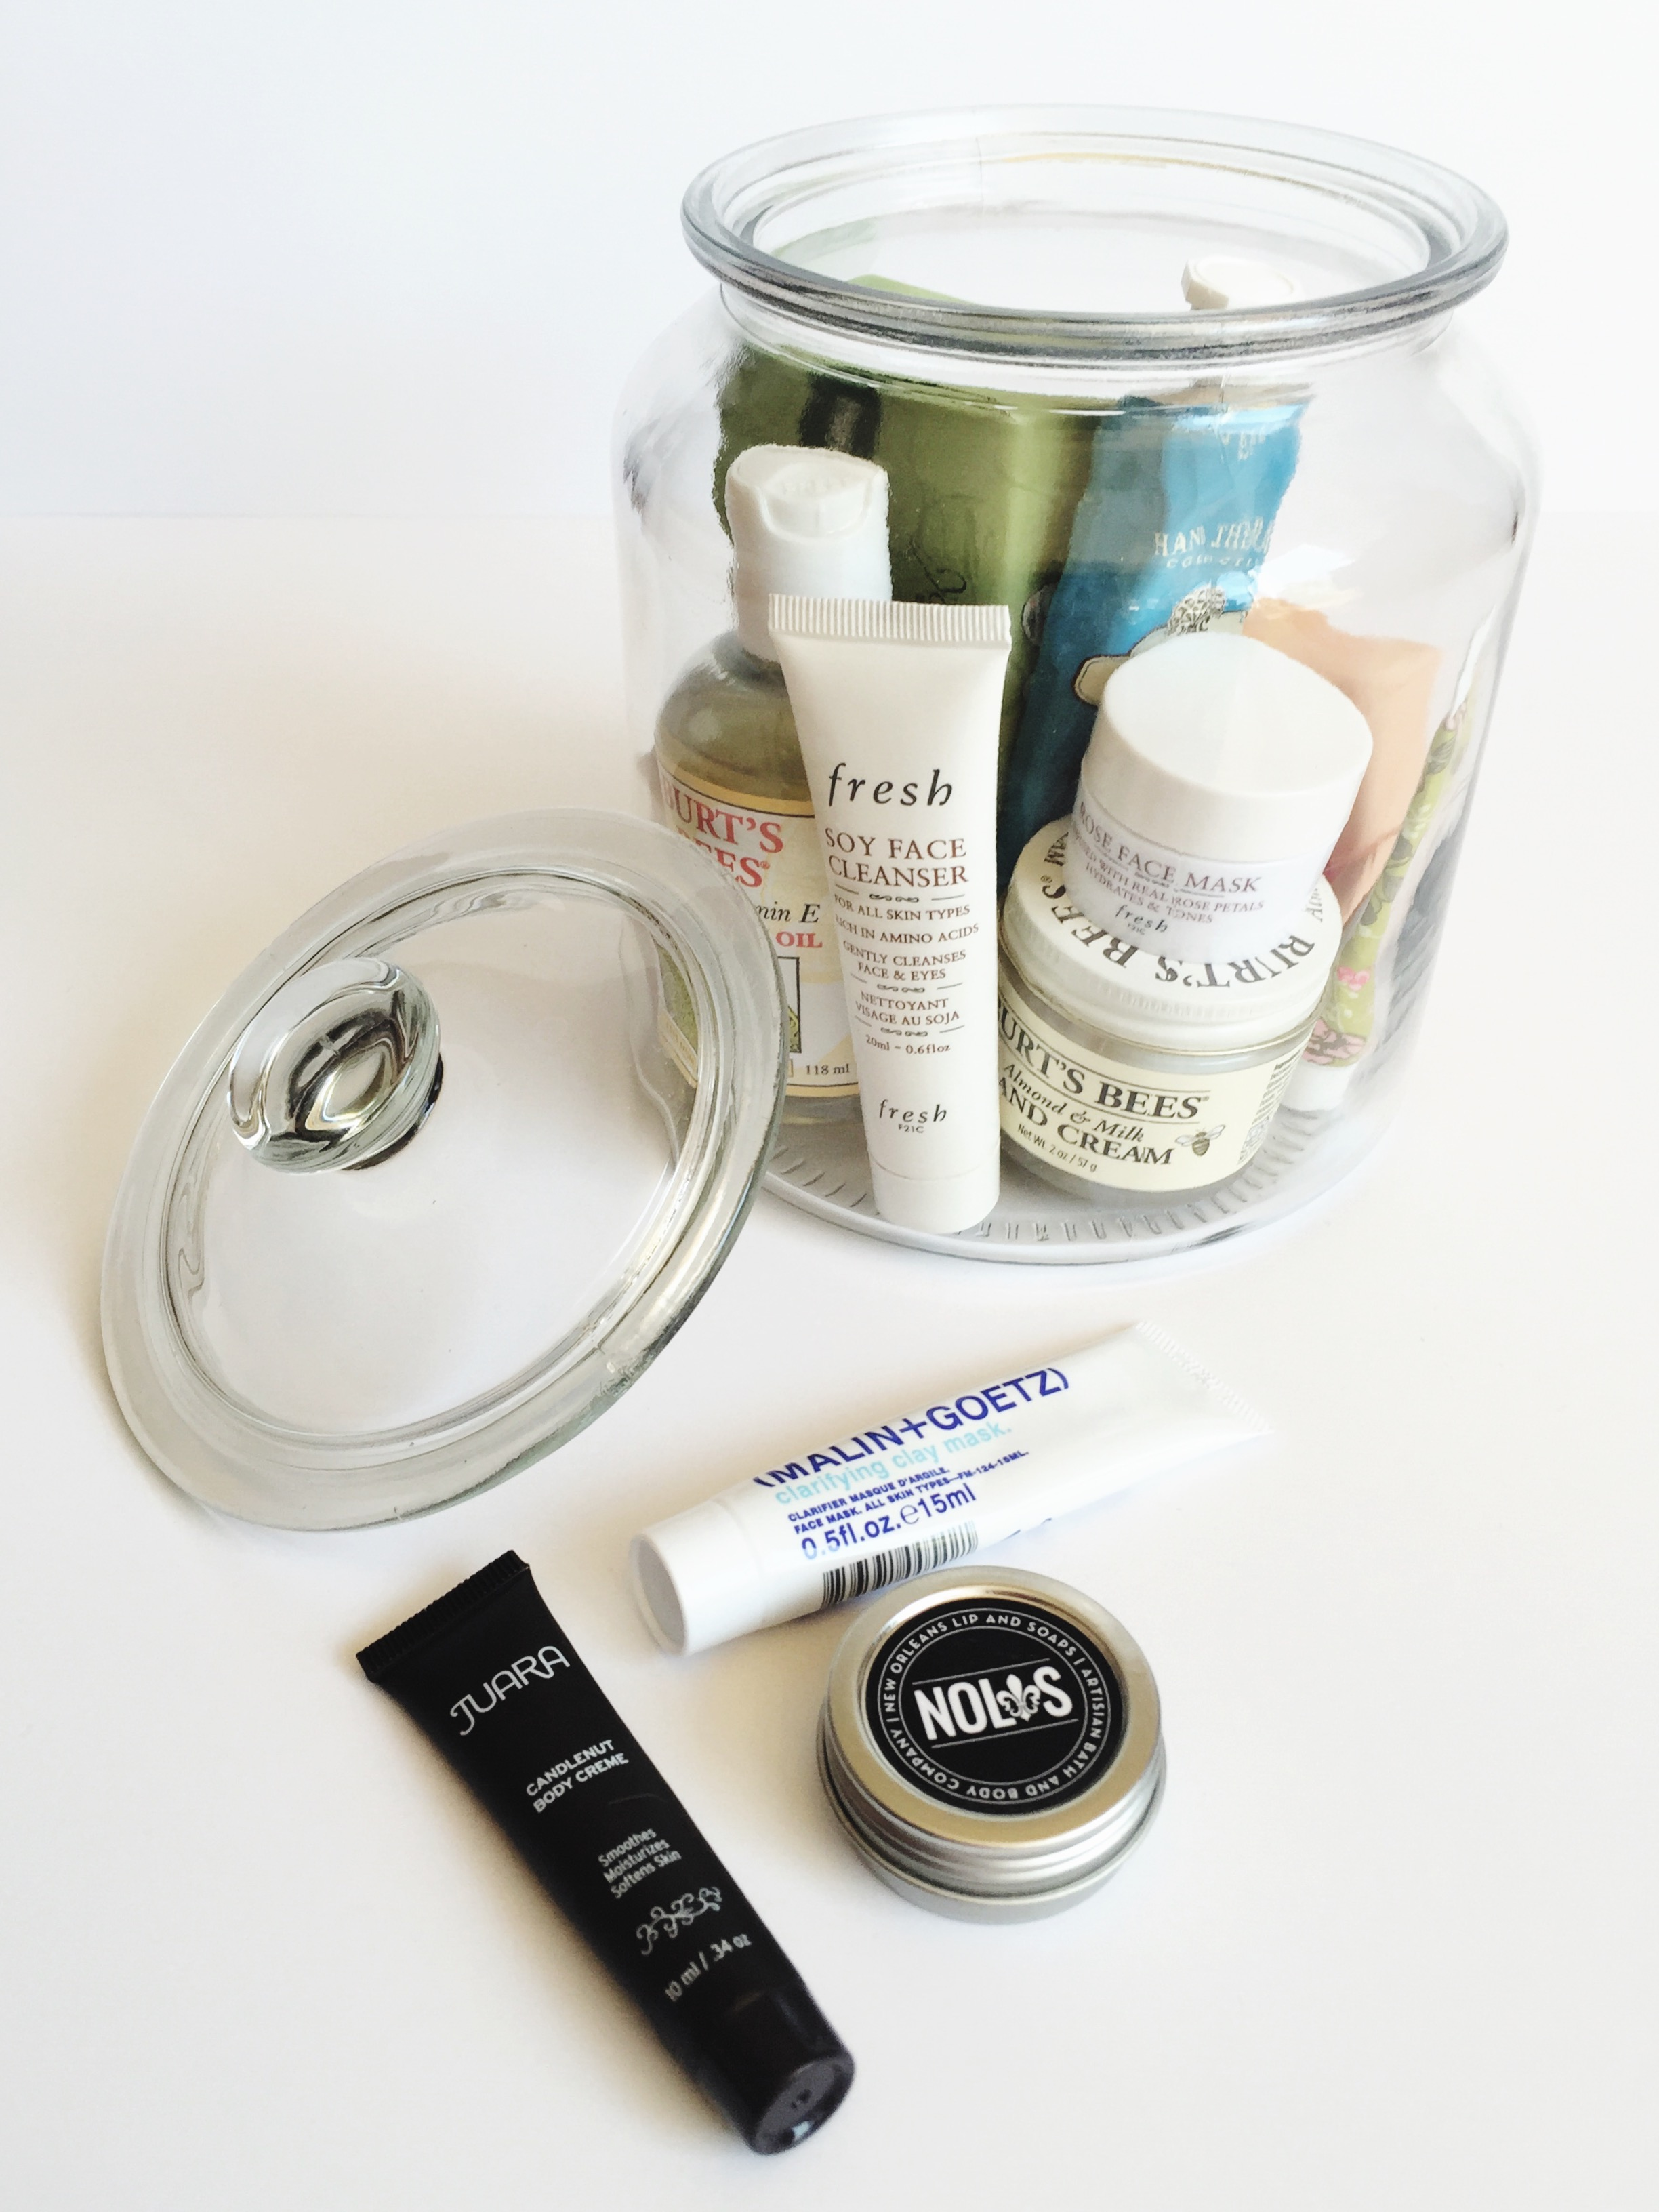 use a glass jar to corral small beauty products. it's both functional and pretty.